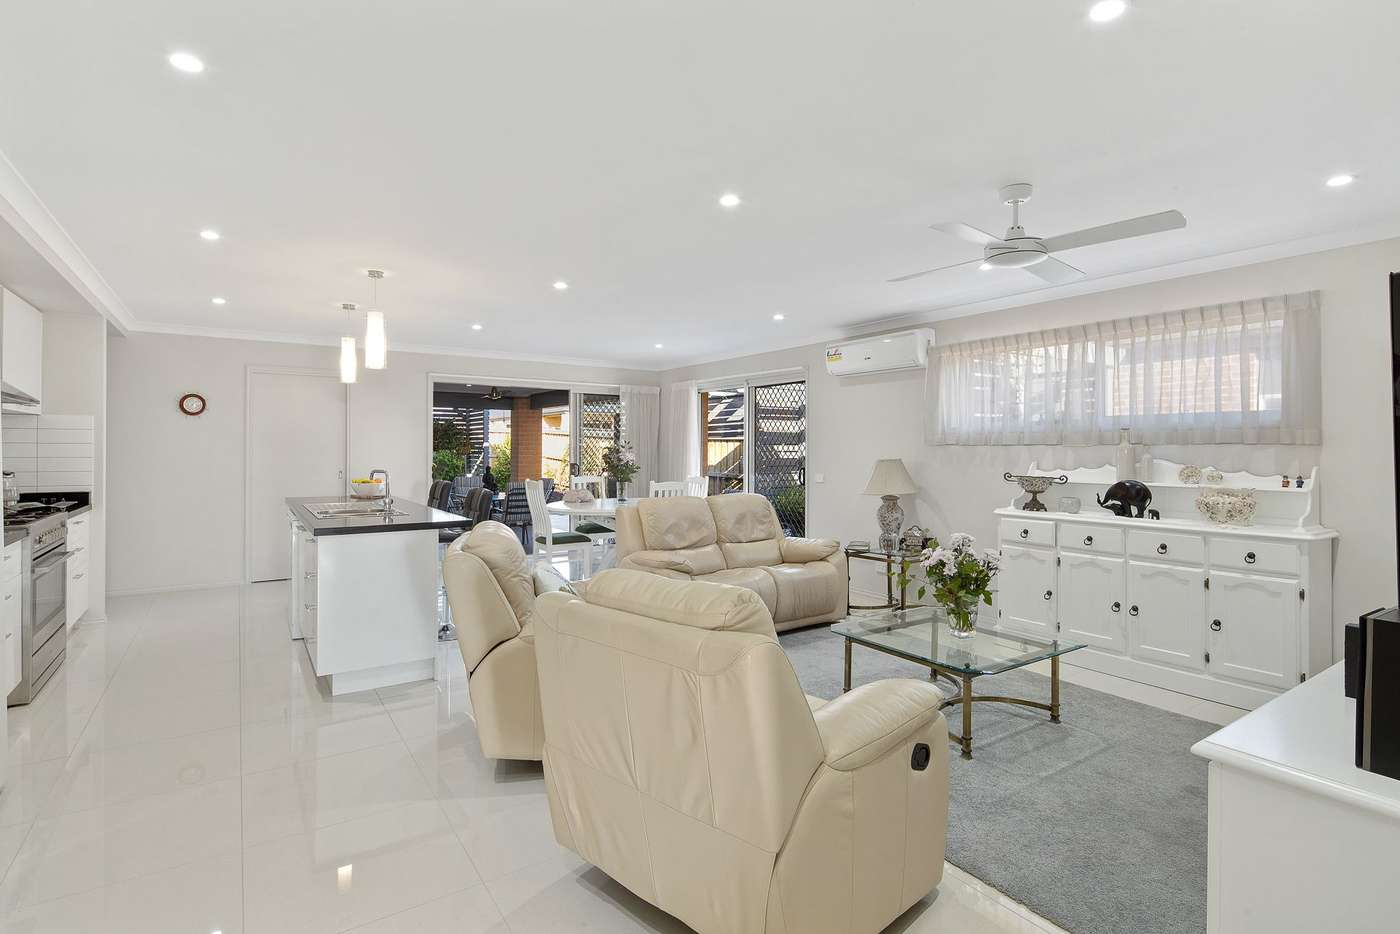 Seventh view of Homely house listing, 37 Seacrest Drive, Cowes VIC 3922